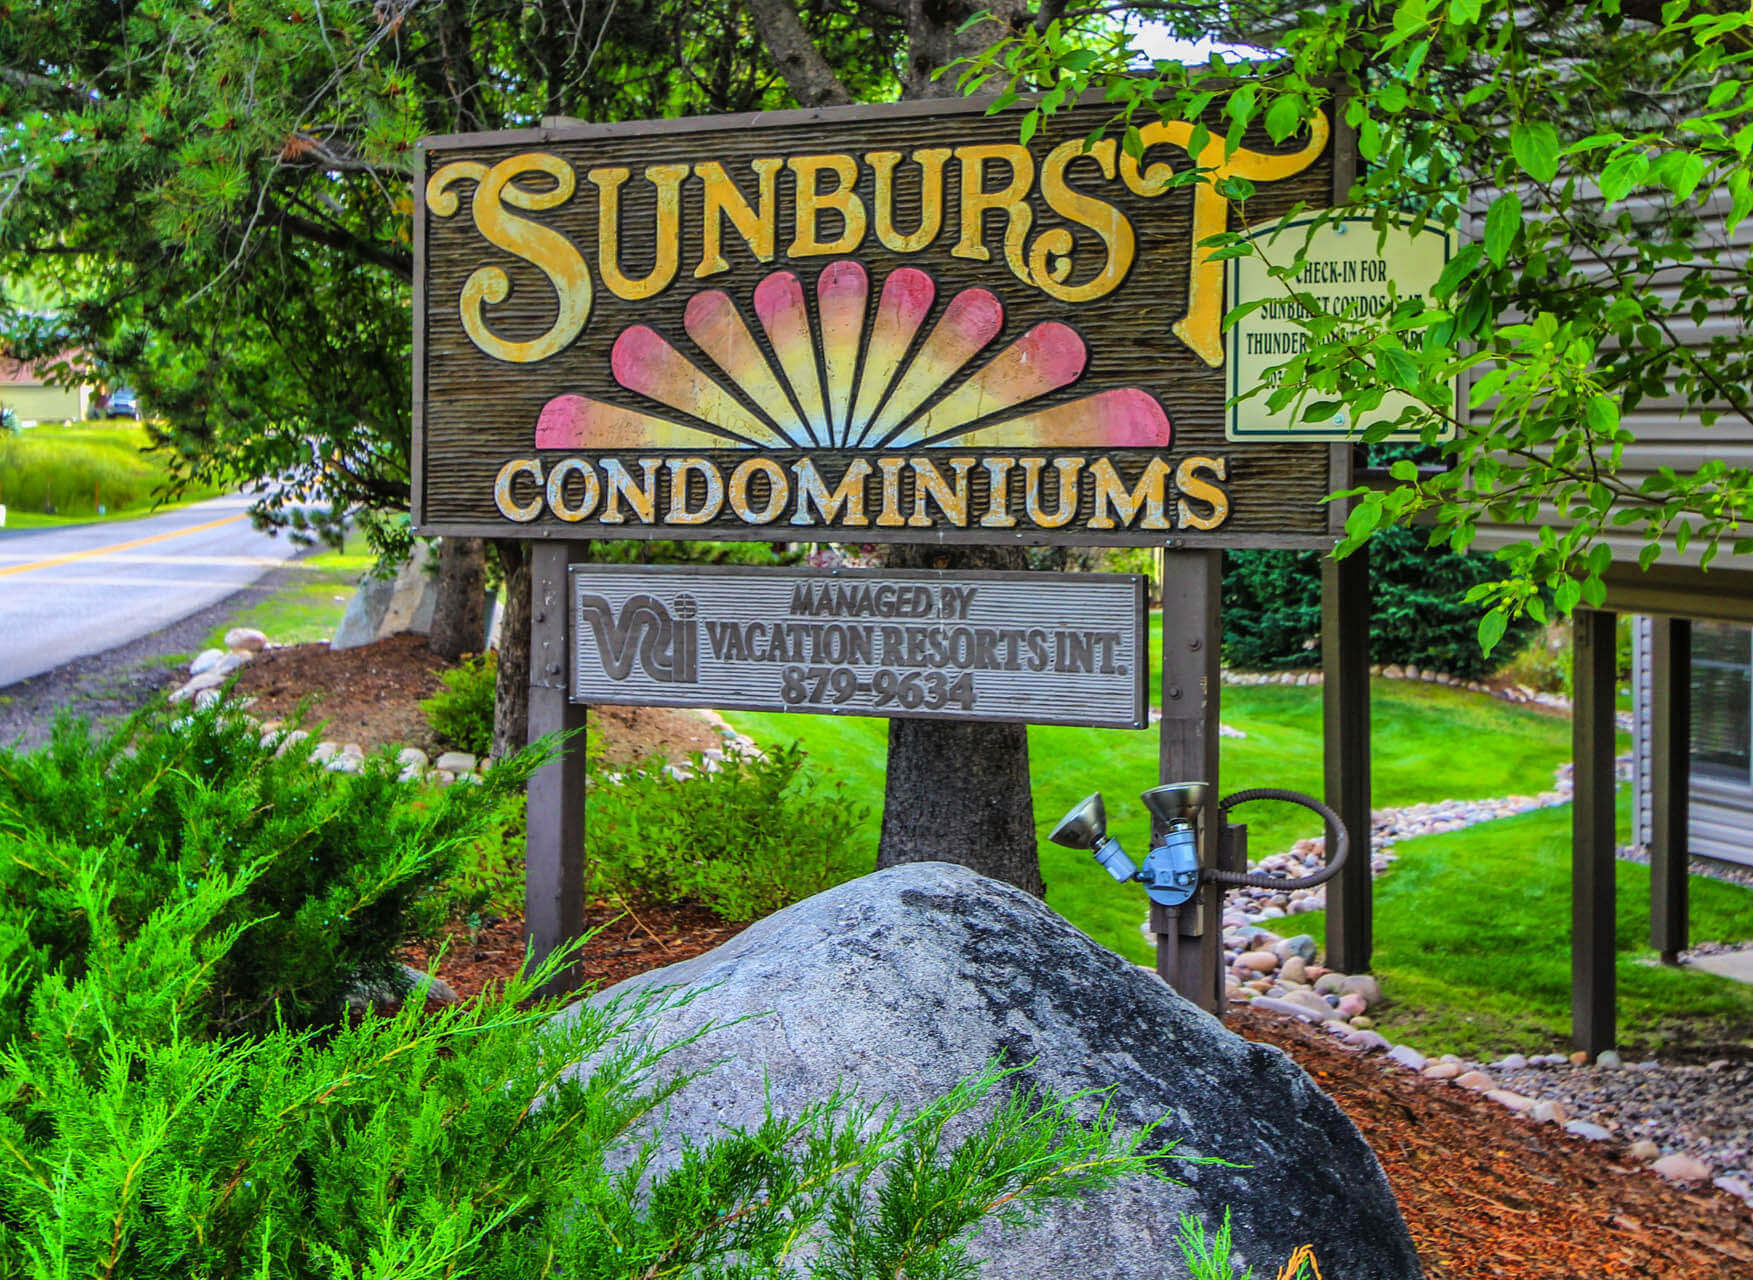 Sunburst Resort Signage